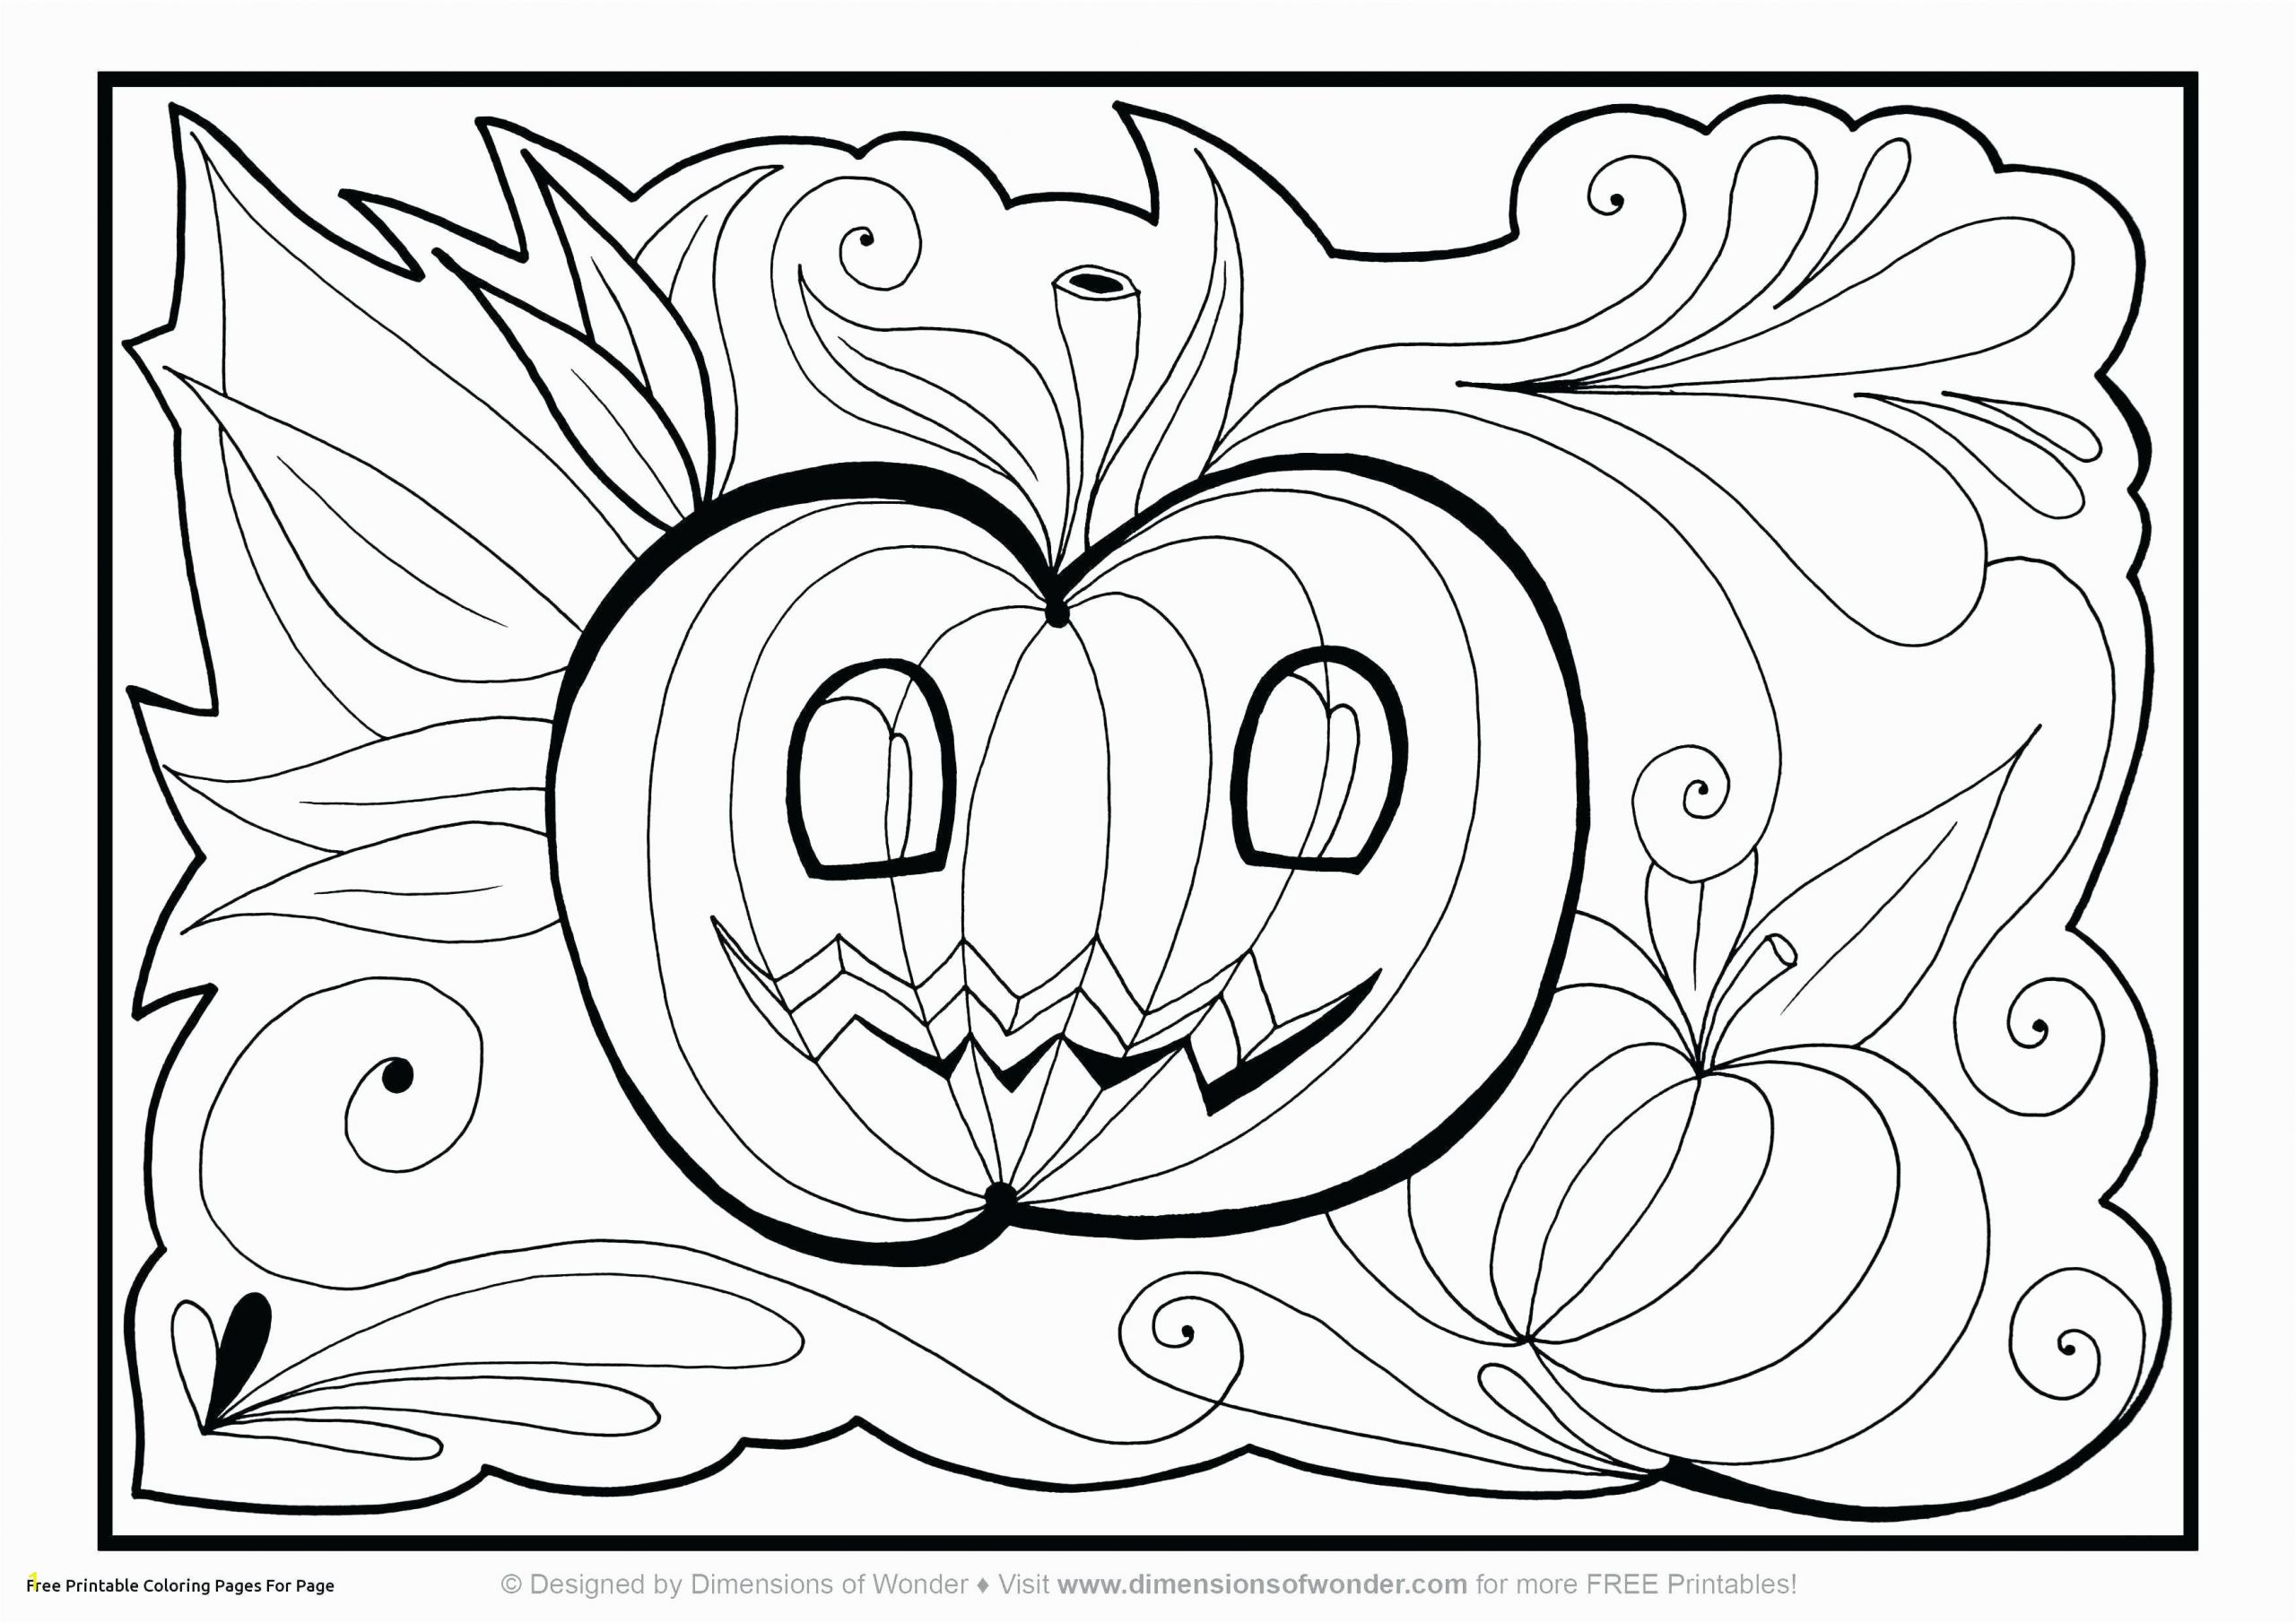 printable thanksgiving coloring pages aesthetic tayo large print books brandy and mr whiskers sports themed for teens mini mushroom book realistic bird adult colouring